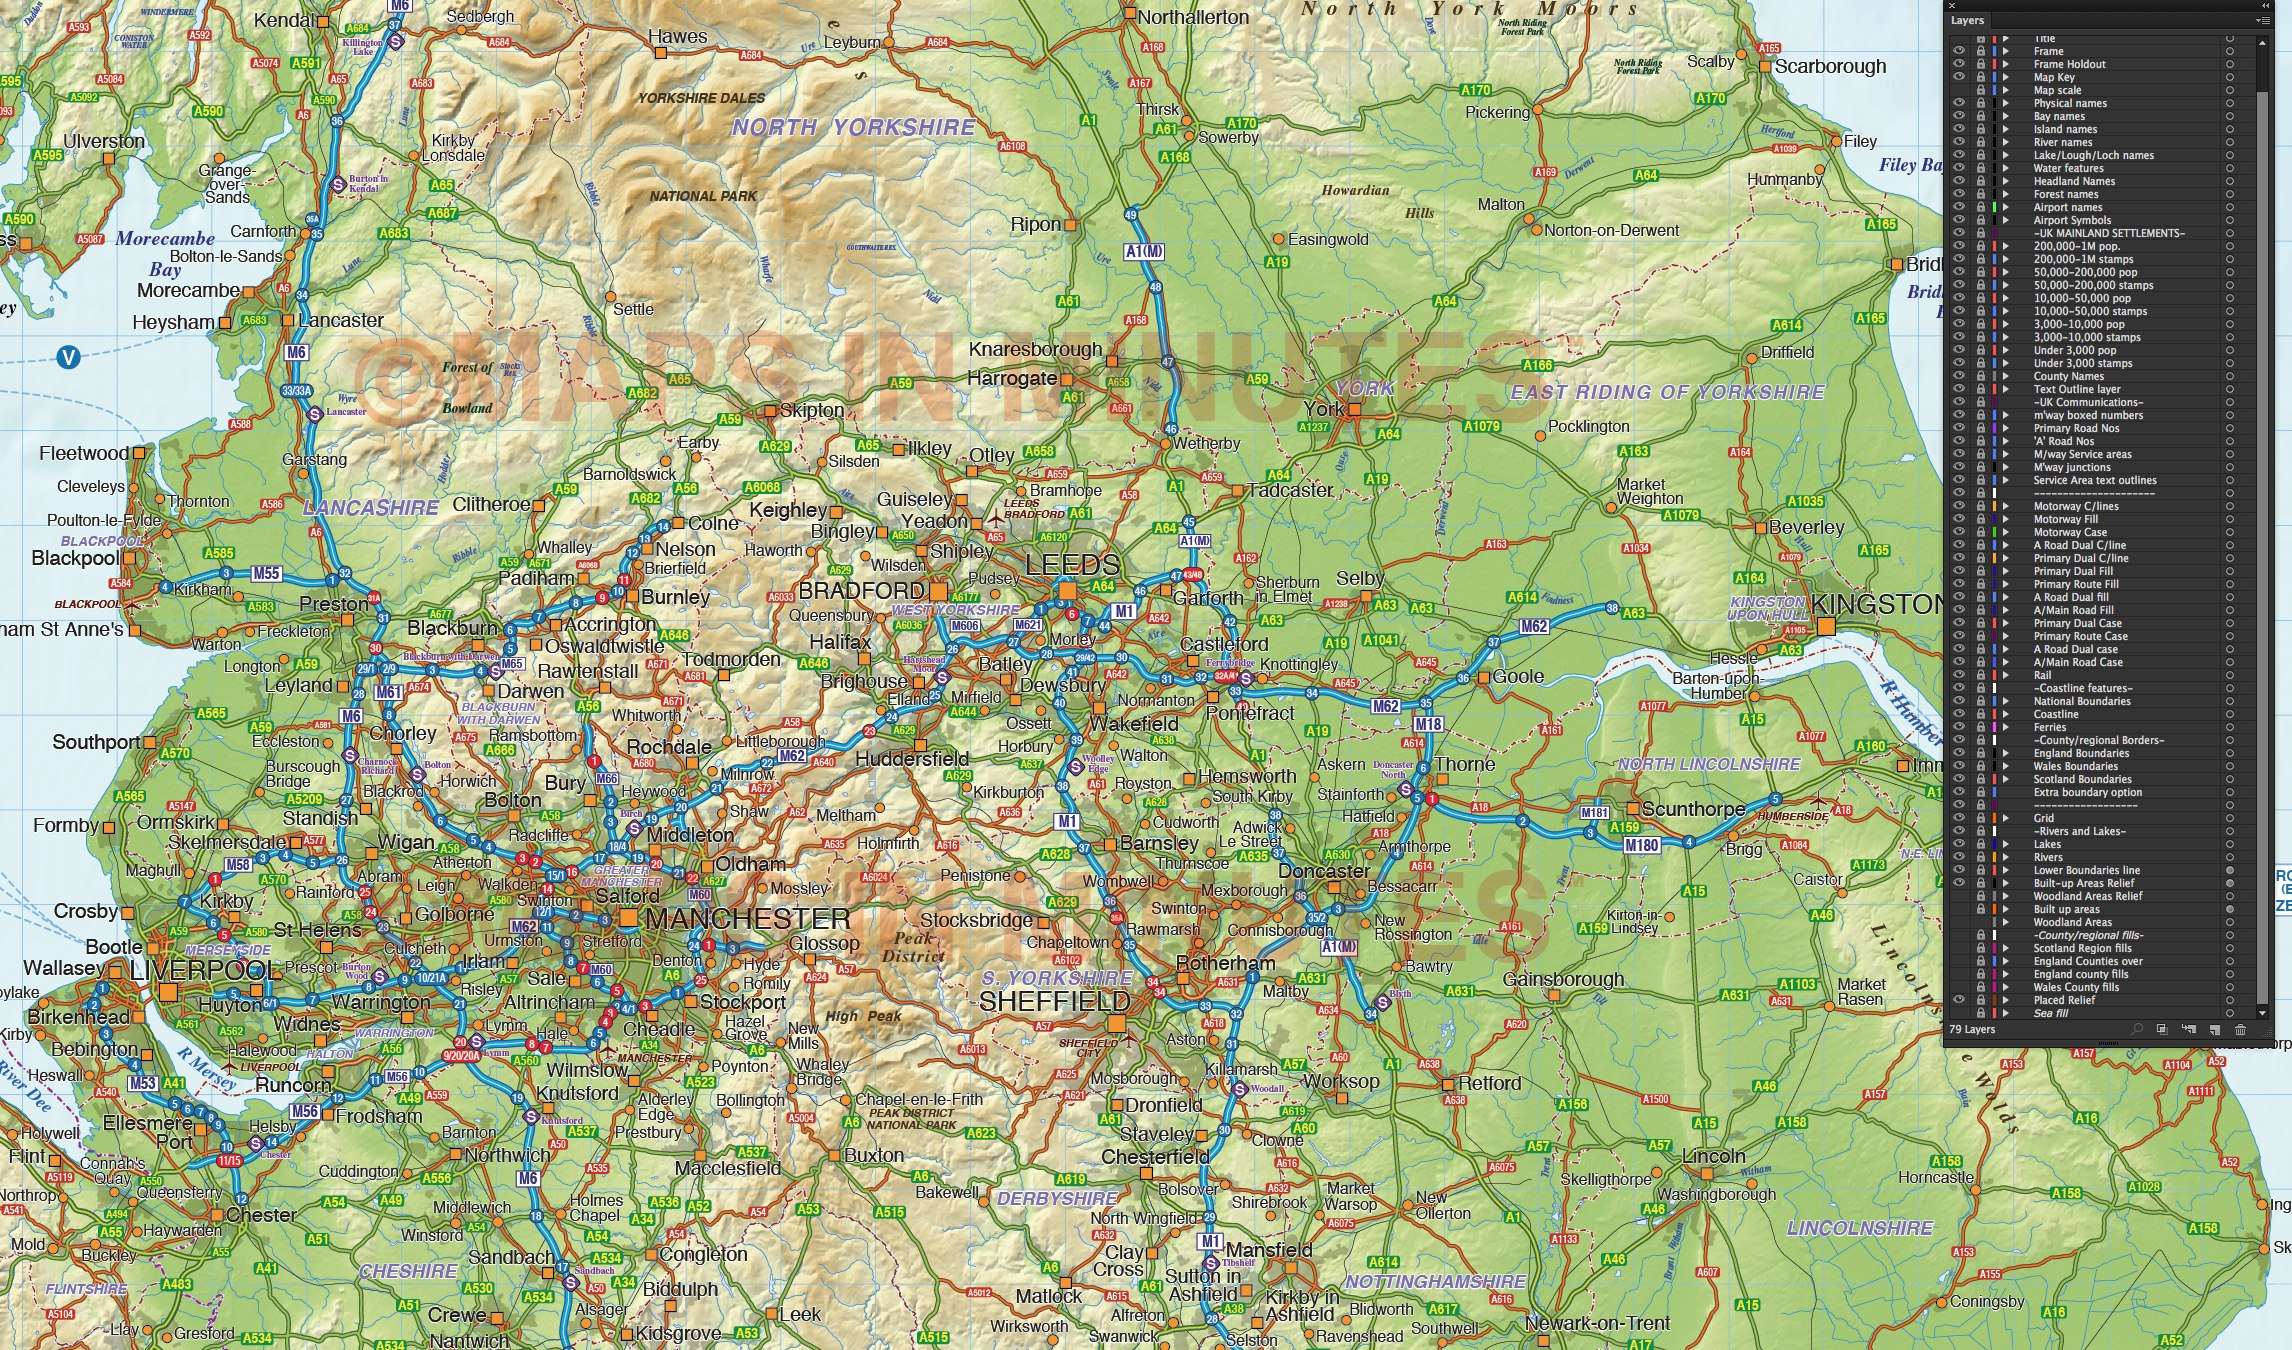 north england county road  u0026 rail map with regular colour relief  1m scale in illustrator vector